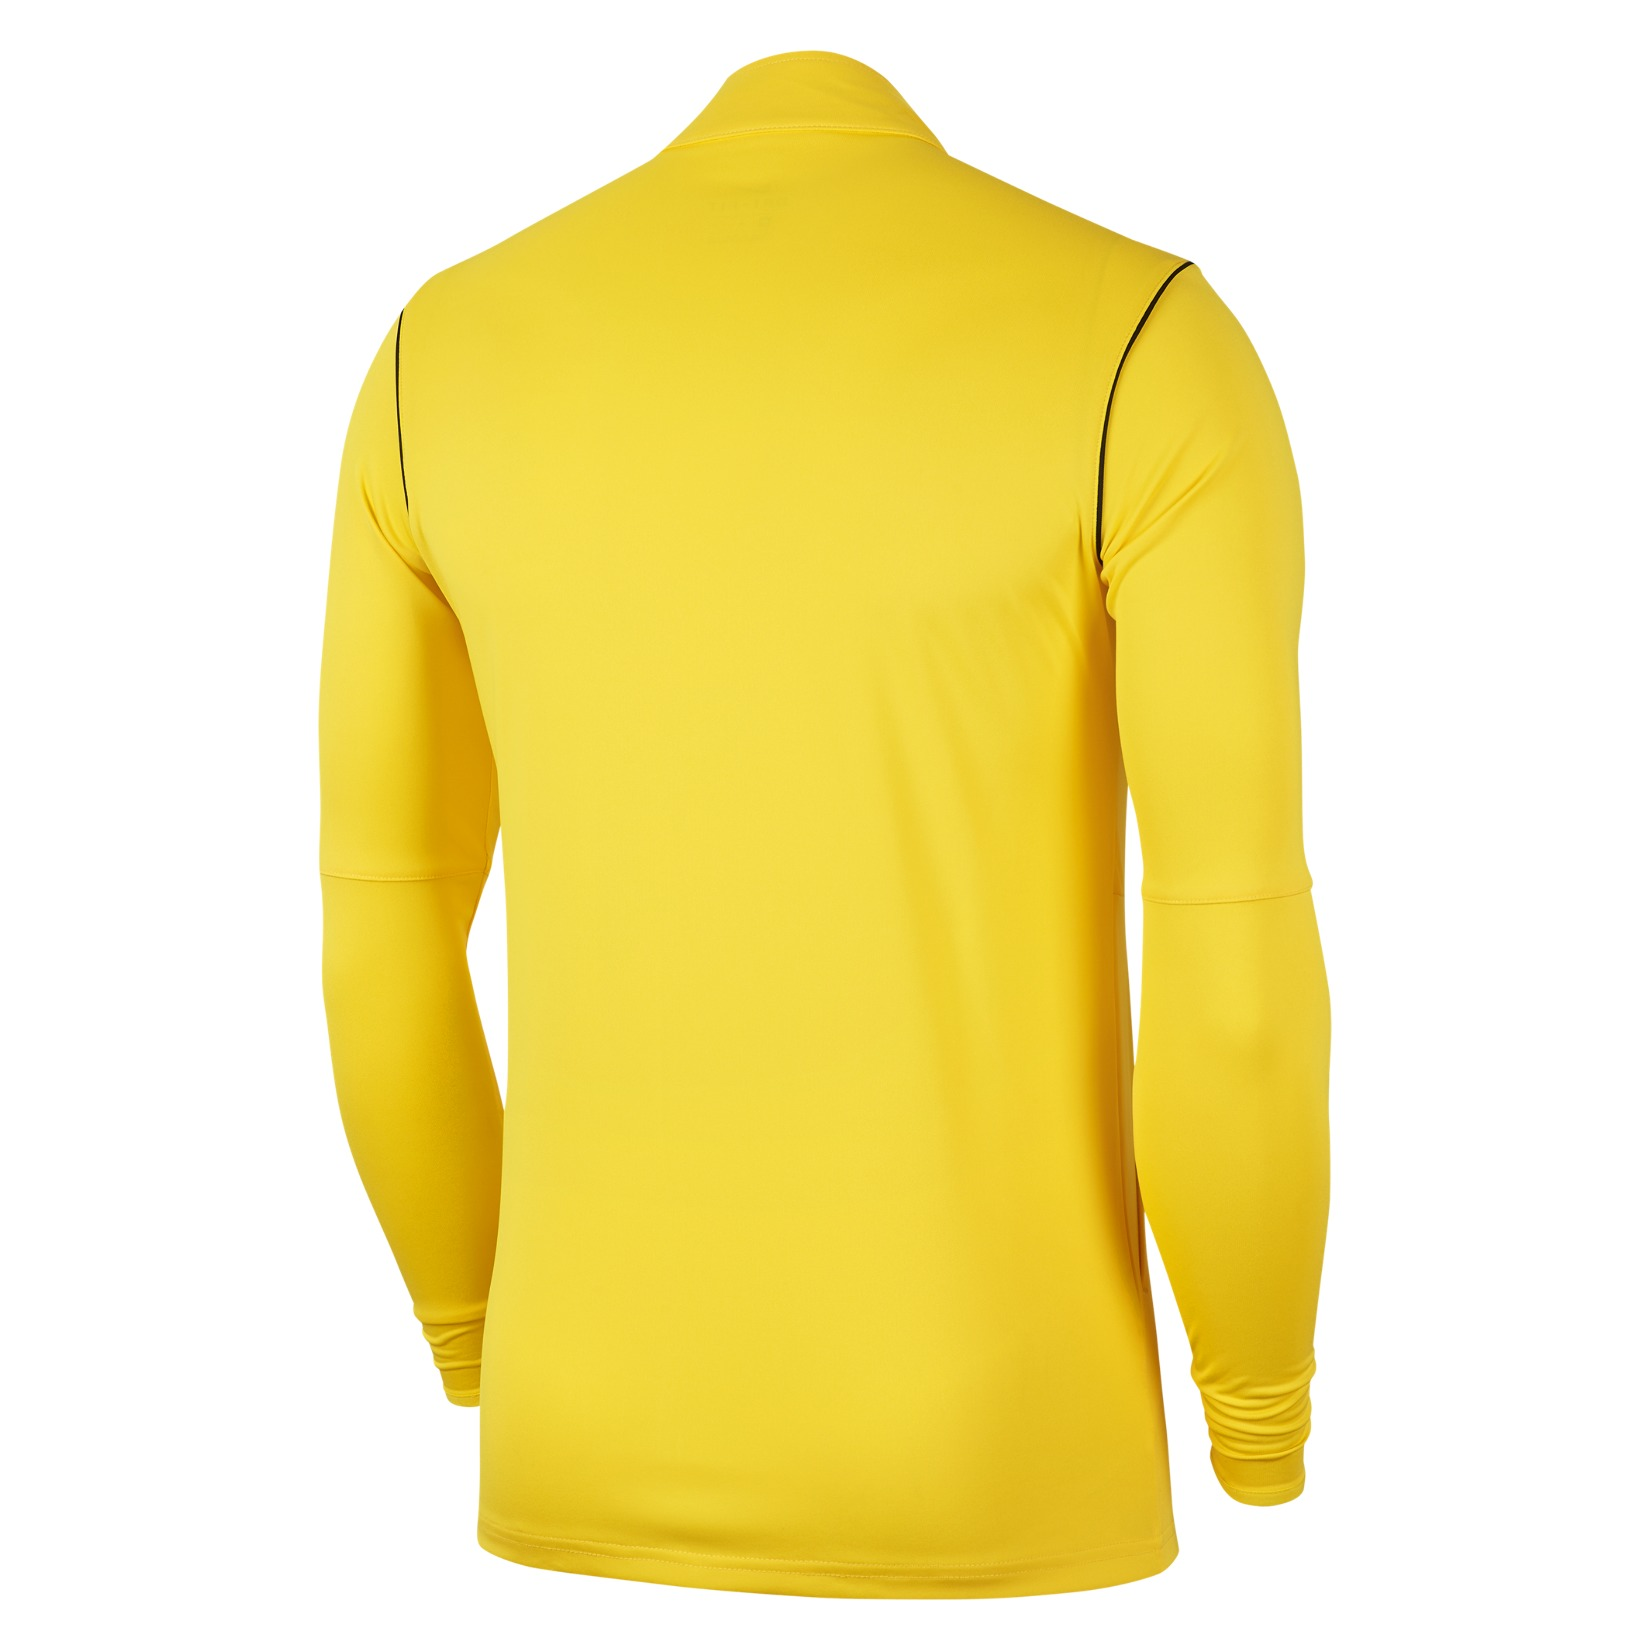 Nike Dri-fit Park 20 Knitted Track Jacket Tour Yellow-Black-Black